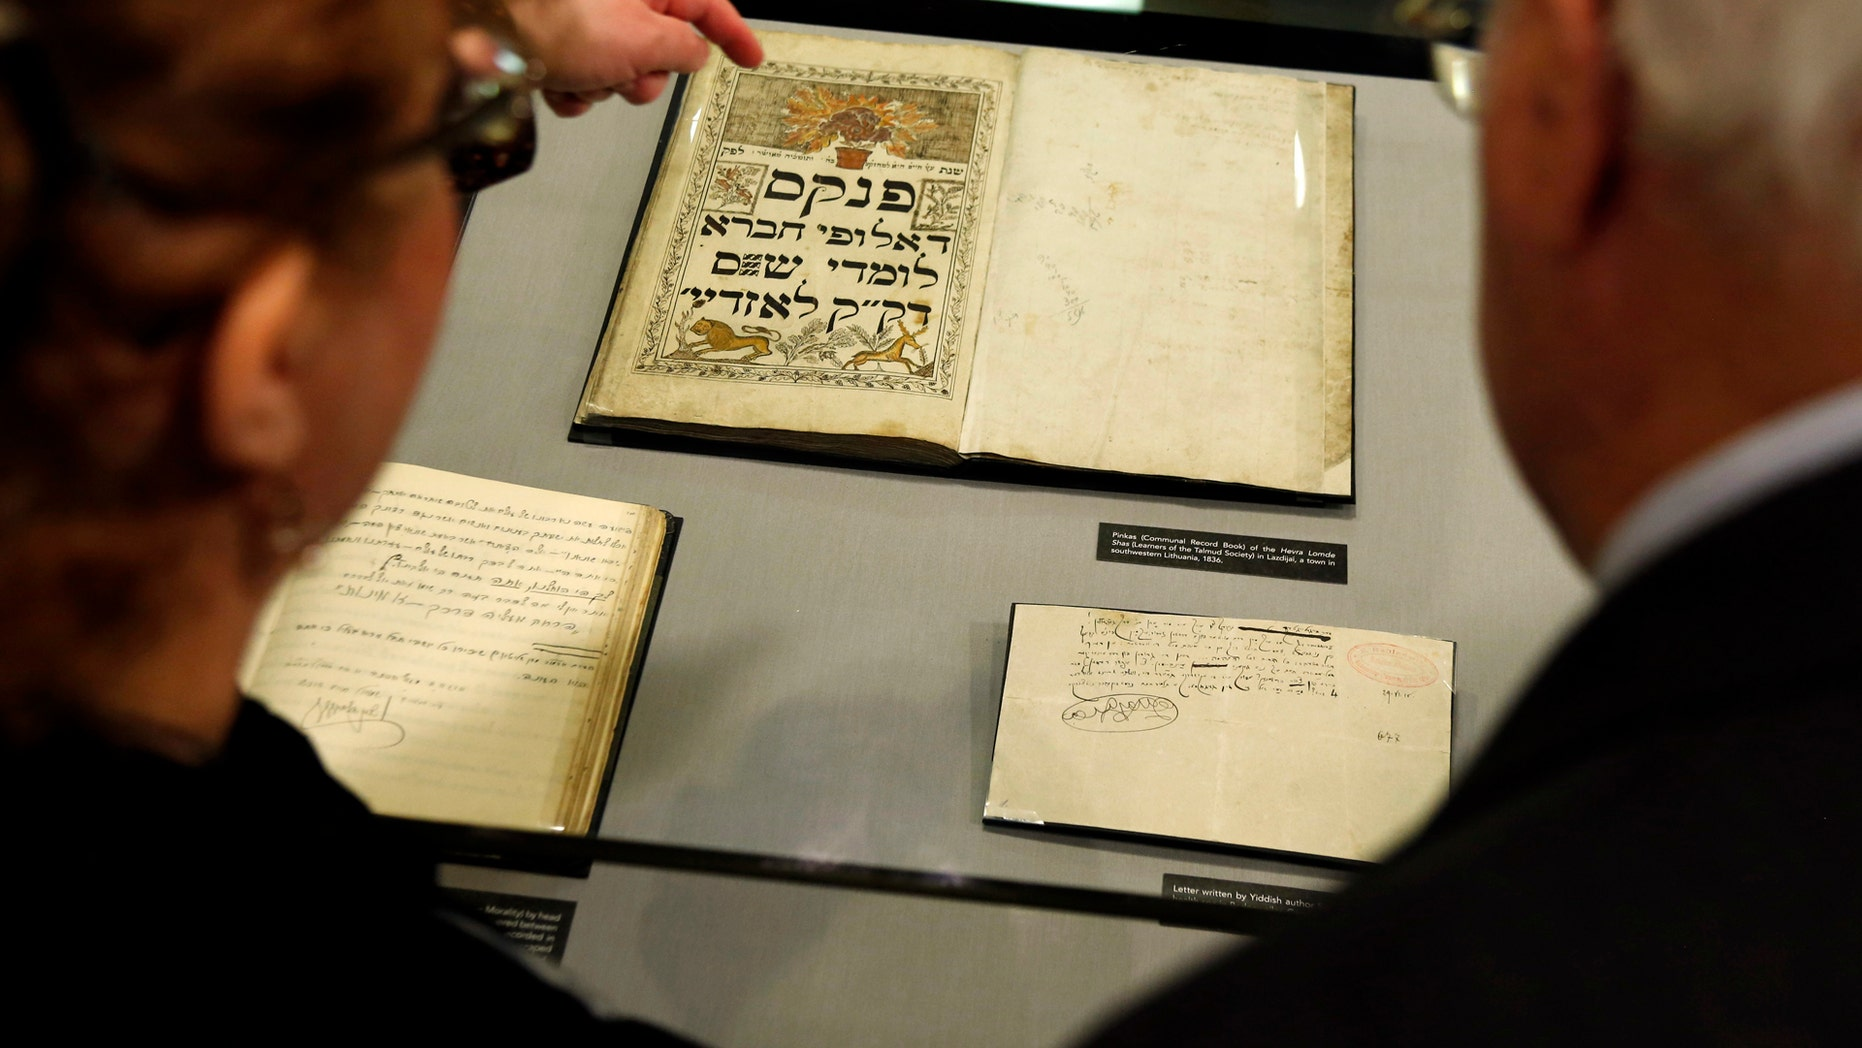 People look over record book from 1836 that is displayed at the YIVO Institute for Jewish Research in New York, Tuesday, Oct. 24, 2017. These documents along with more than 170,000 other pages are part of a recently discovered trove of Jewish materials from Lithuania thought to have been destroyed during the Holocaust. (AP Photo/Seth Wenig)